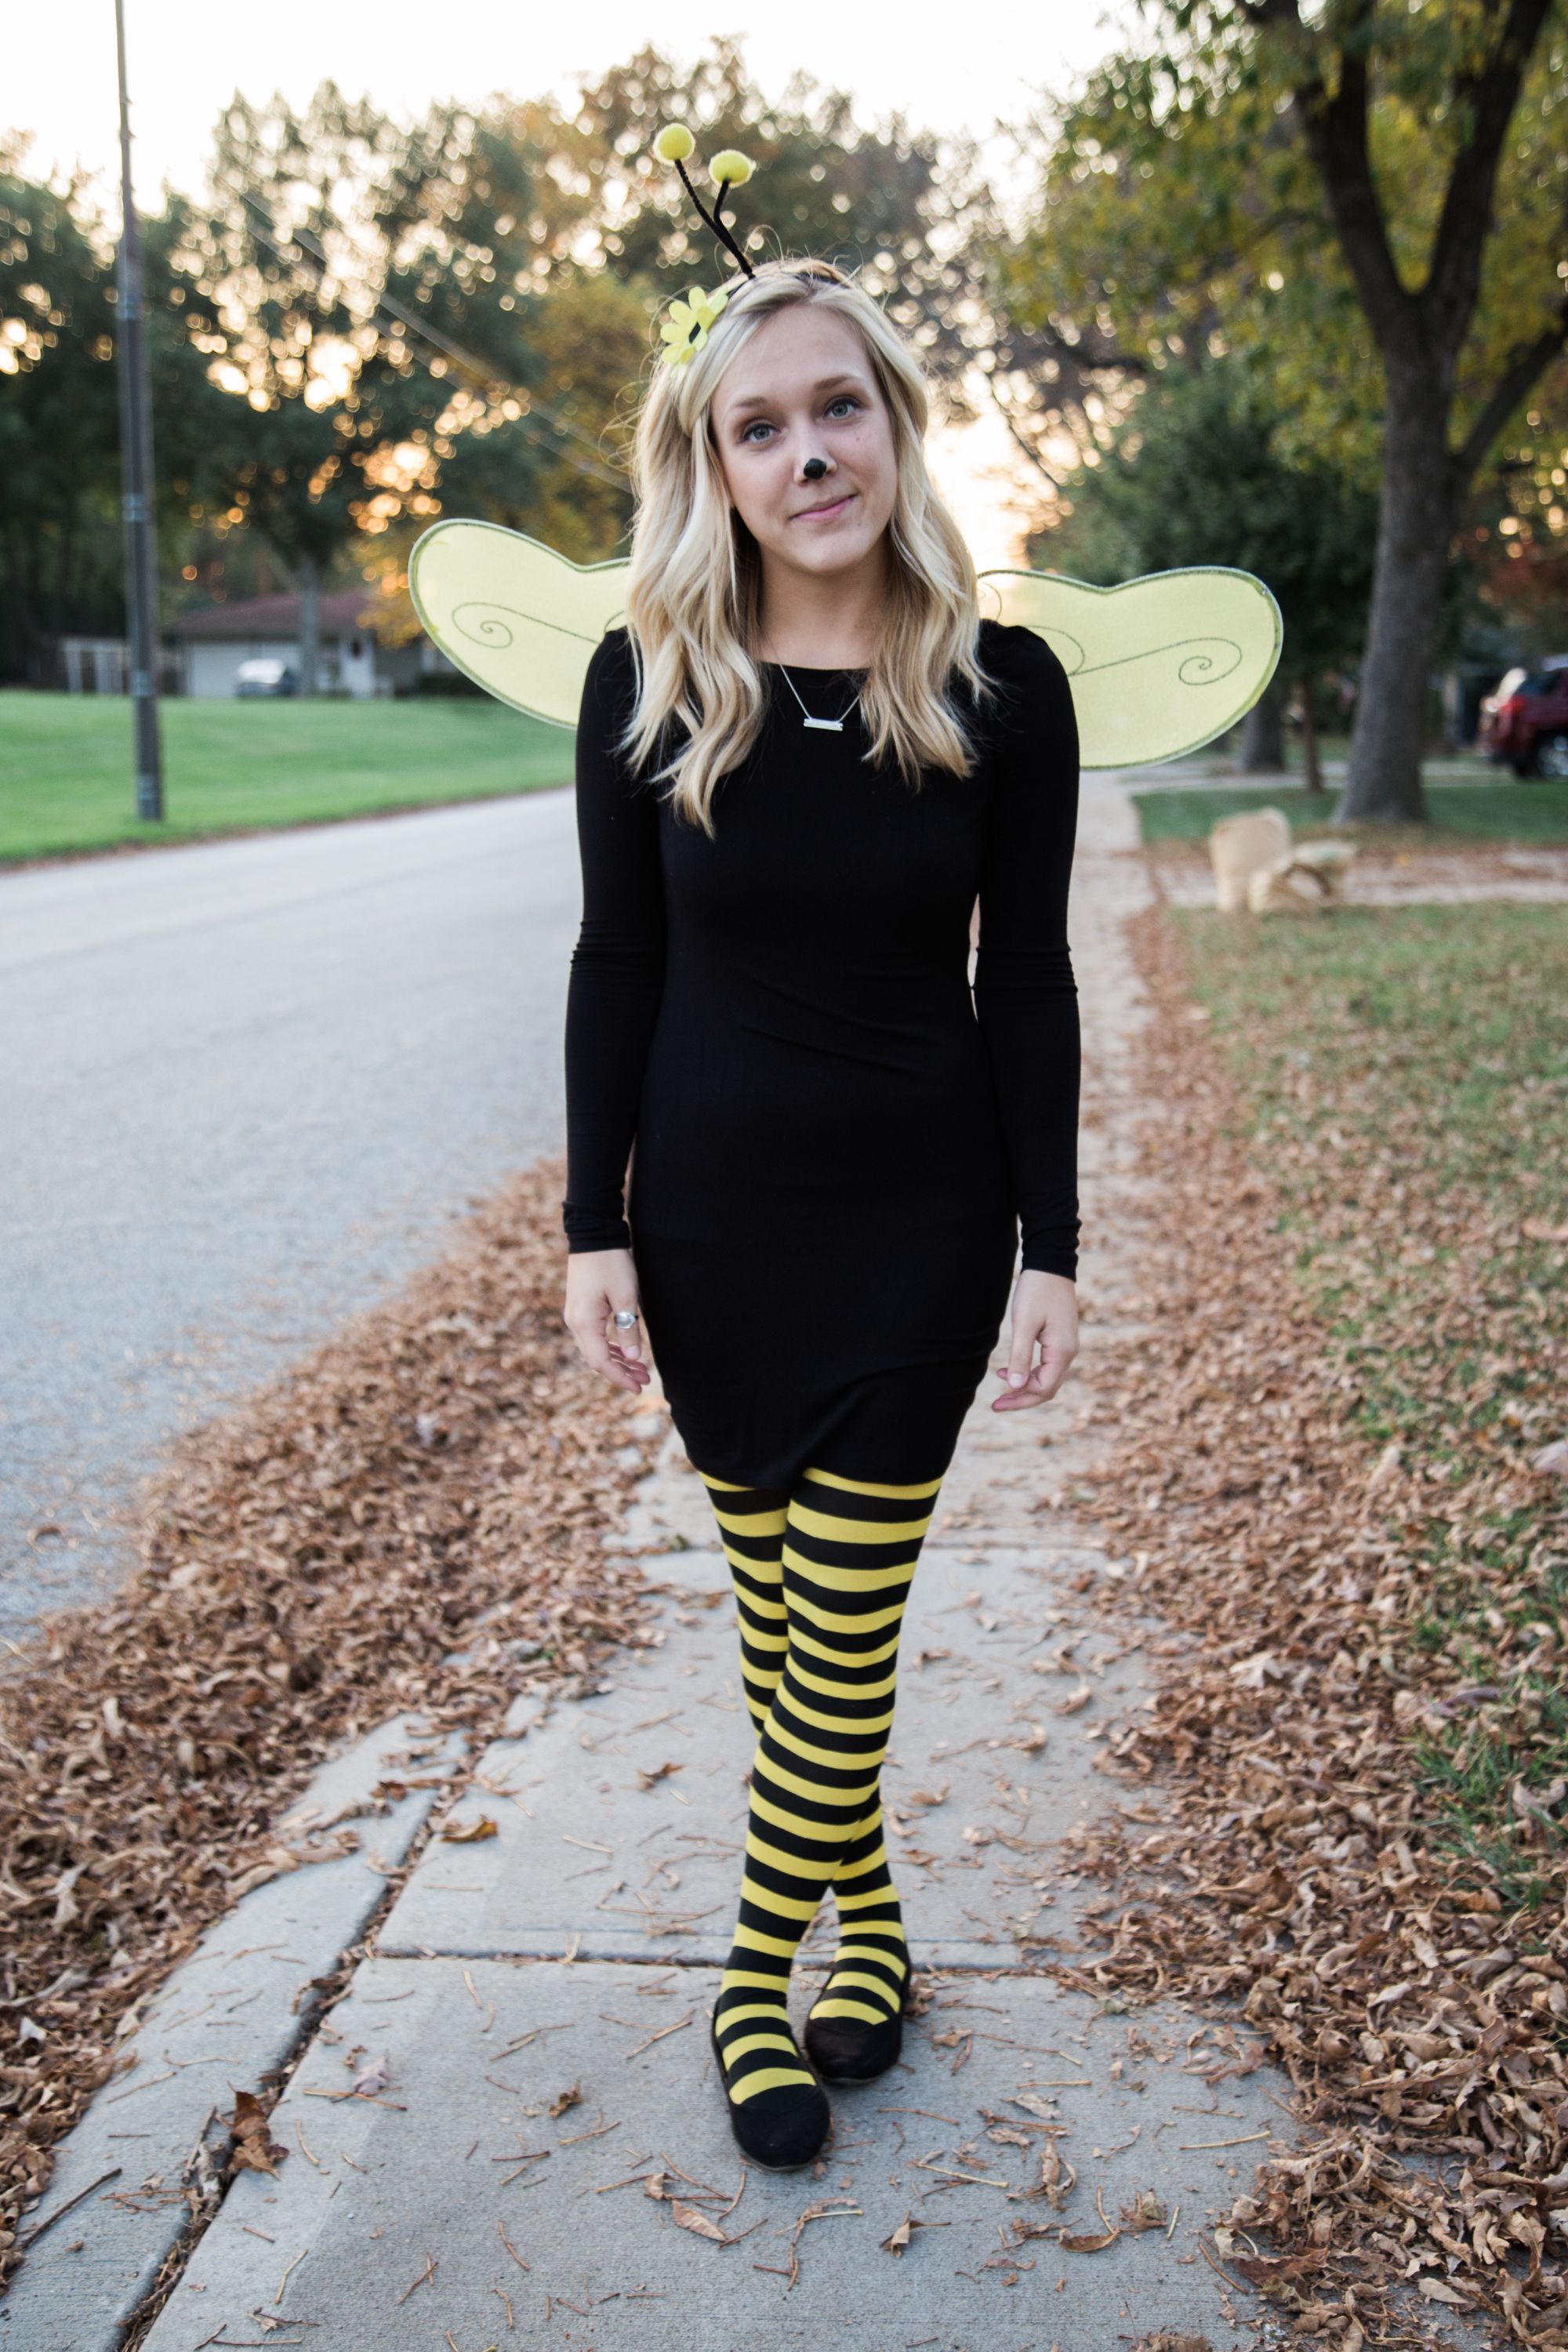 savers halloween costume- last minute costume ideas! - layers and